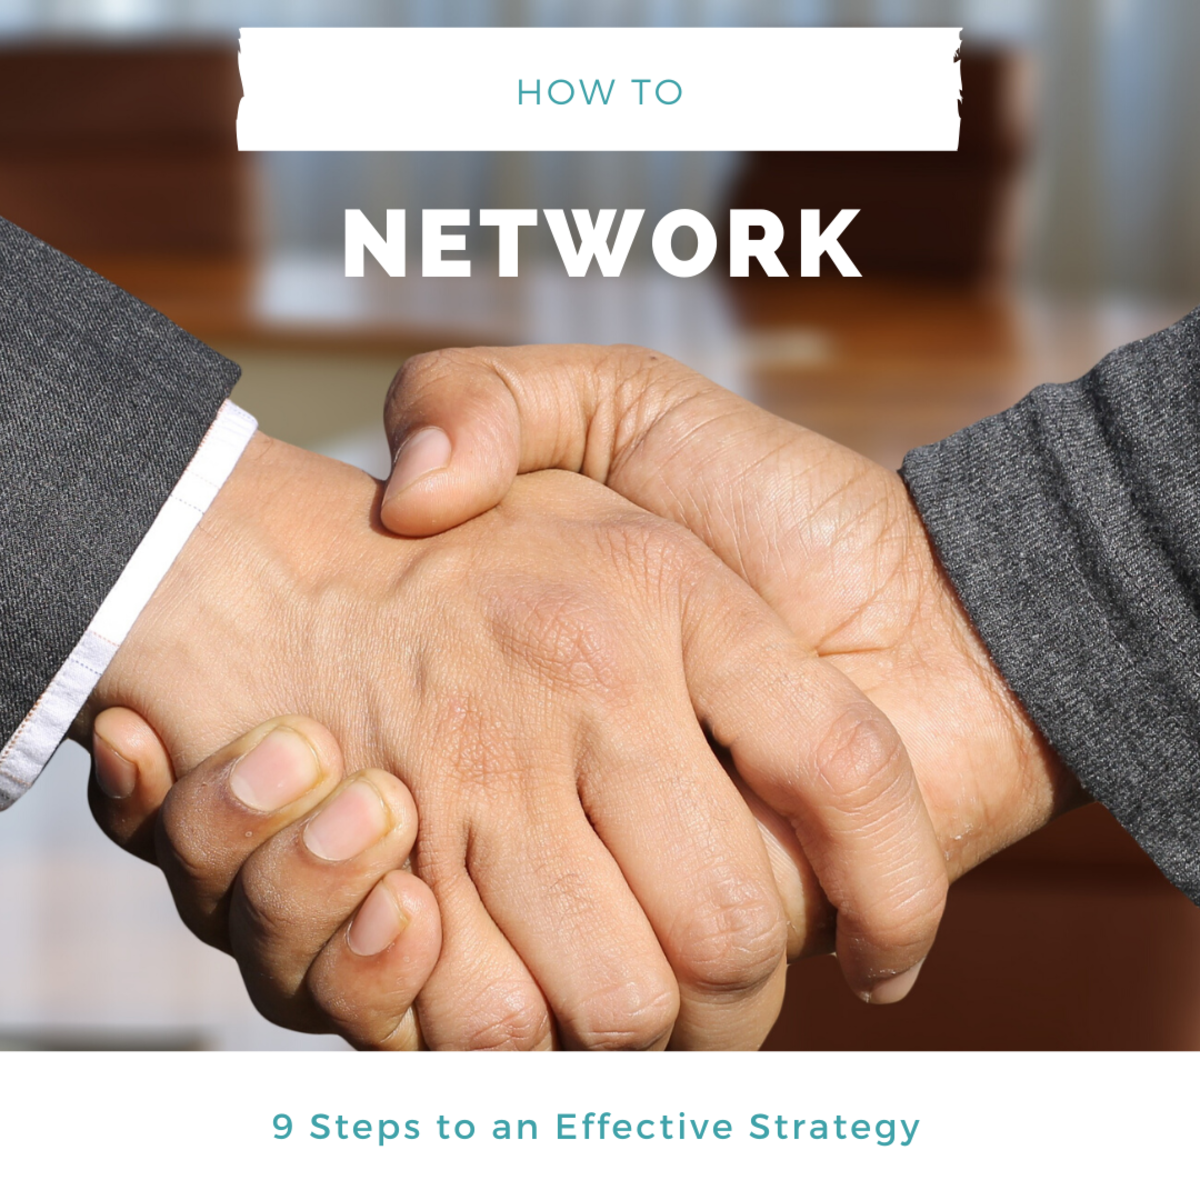 Create an effective strategy to make long-lasting connections!